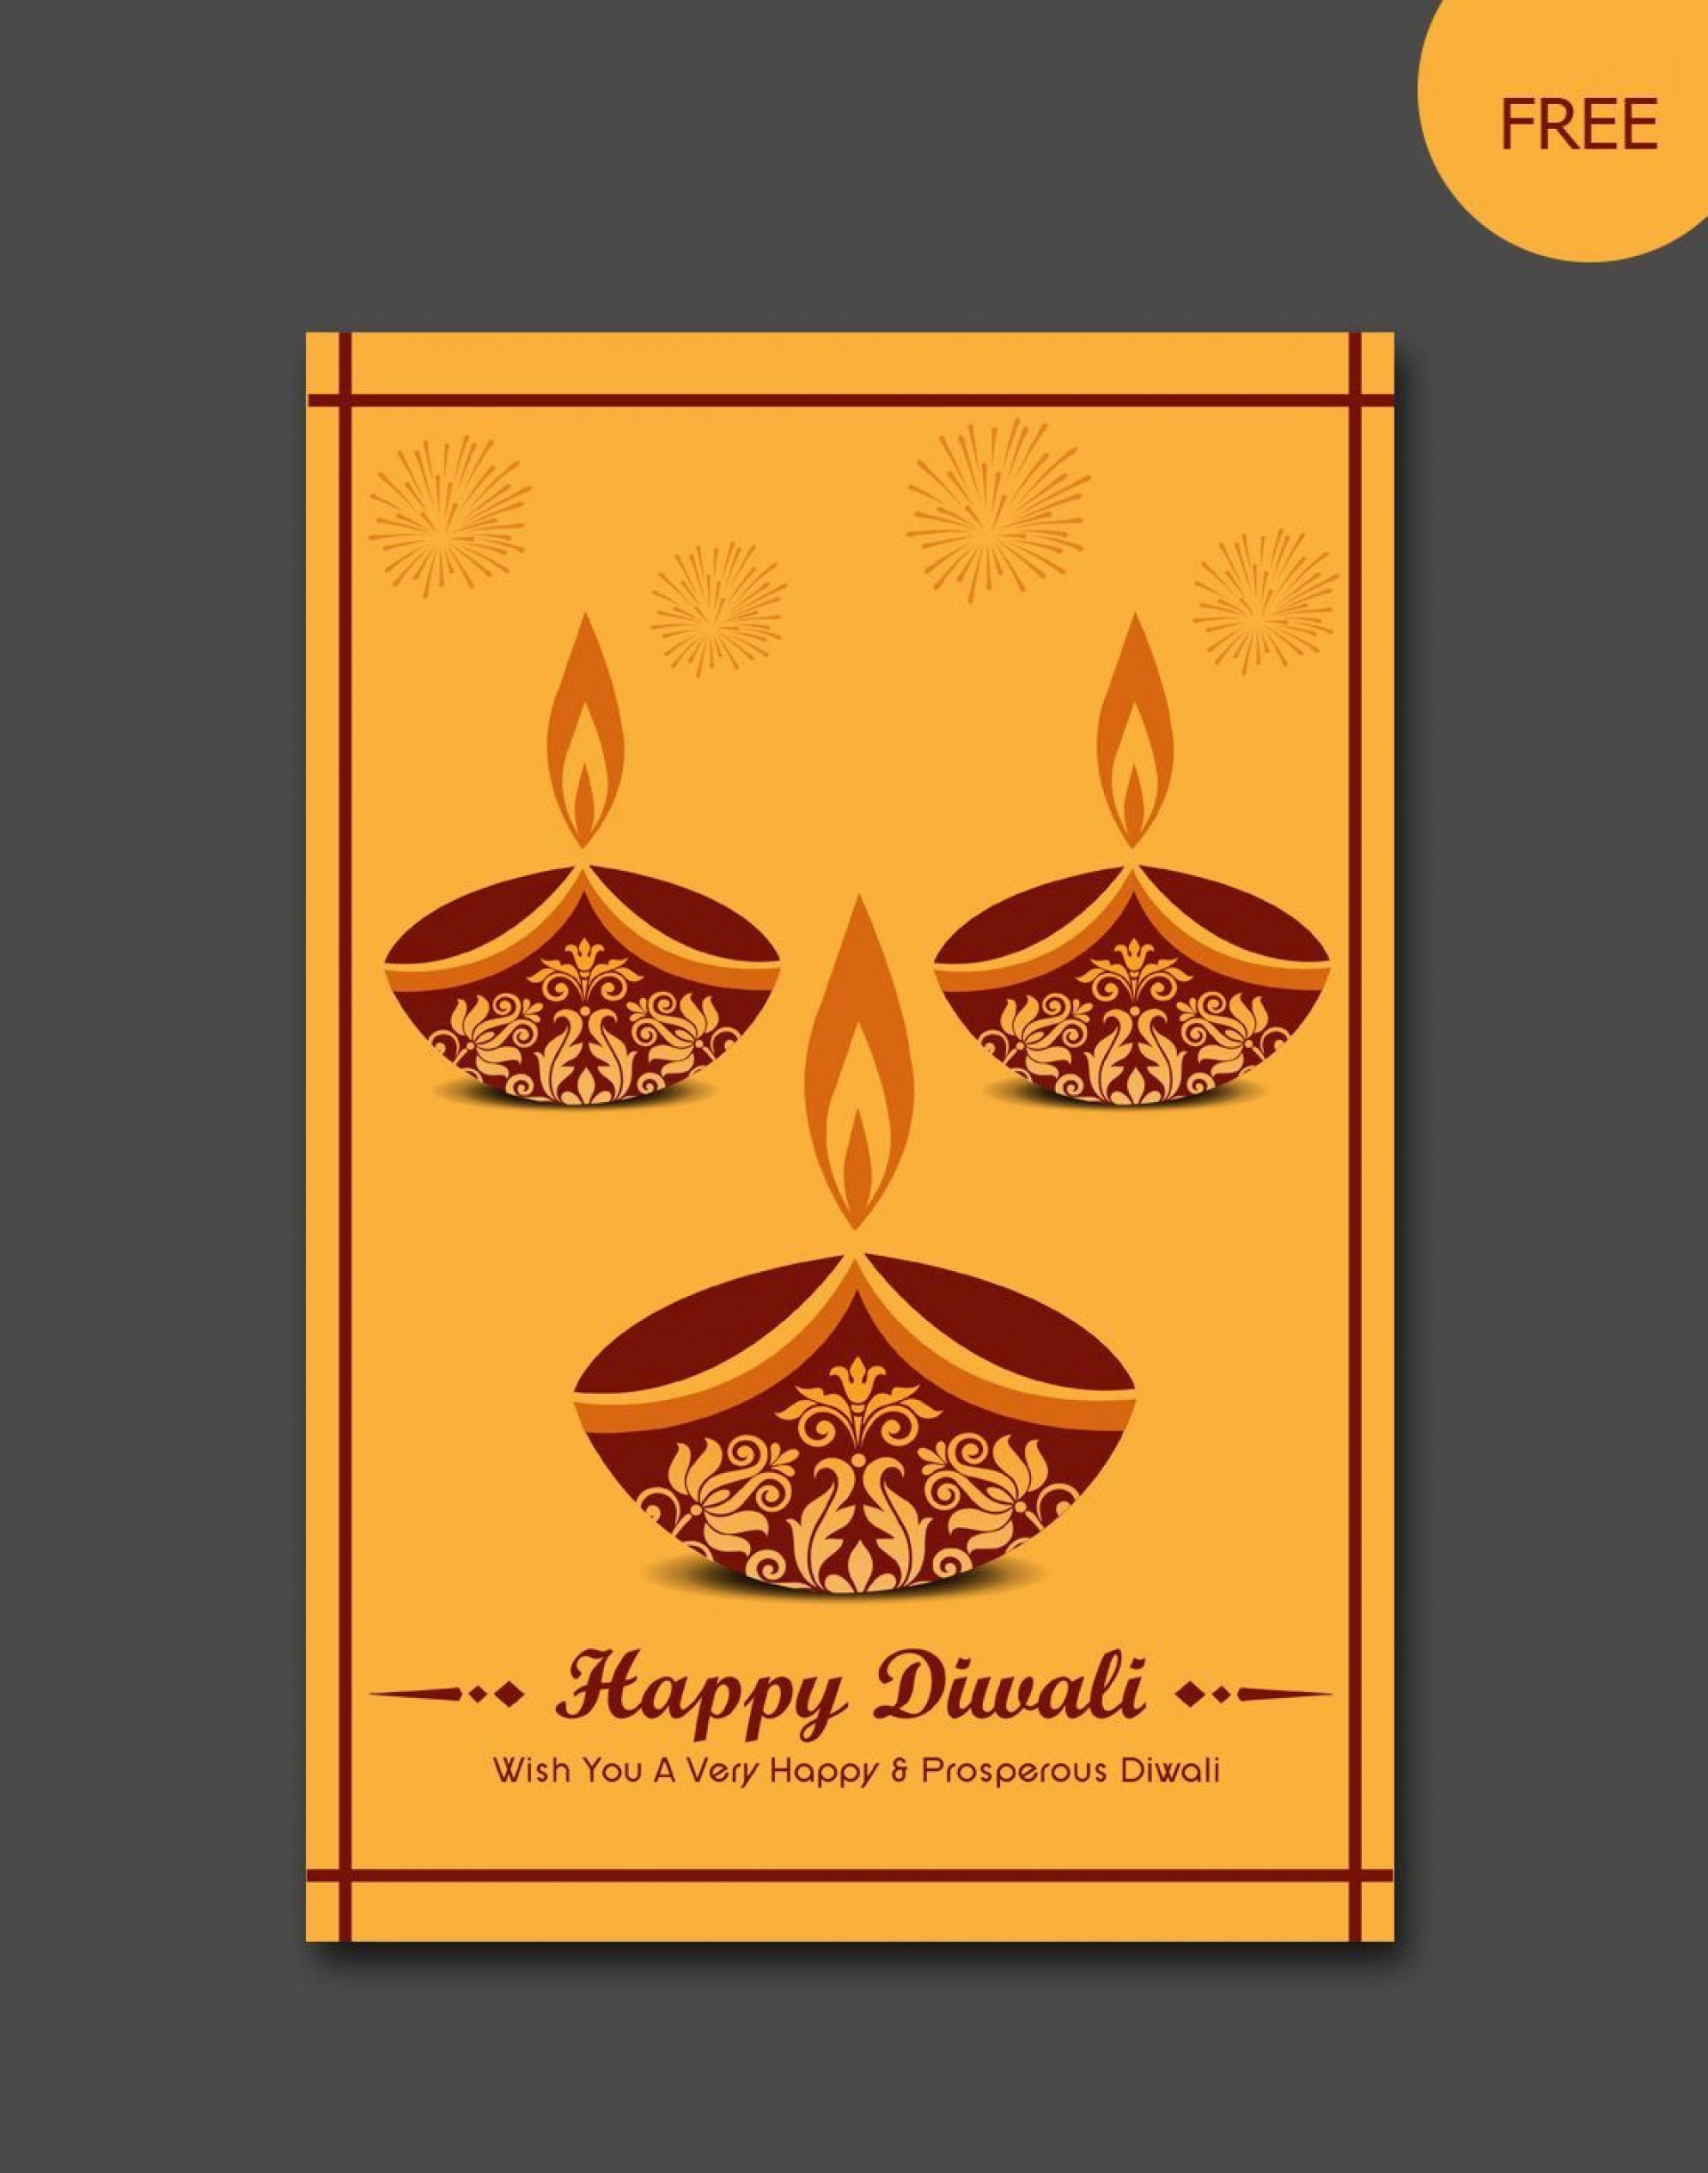 007 Dreaded Diwali Party Invite Template Free Picture 1920